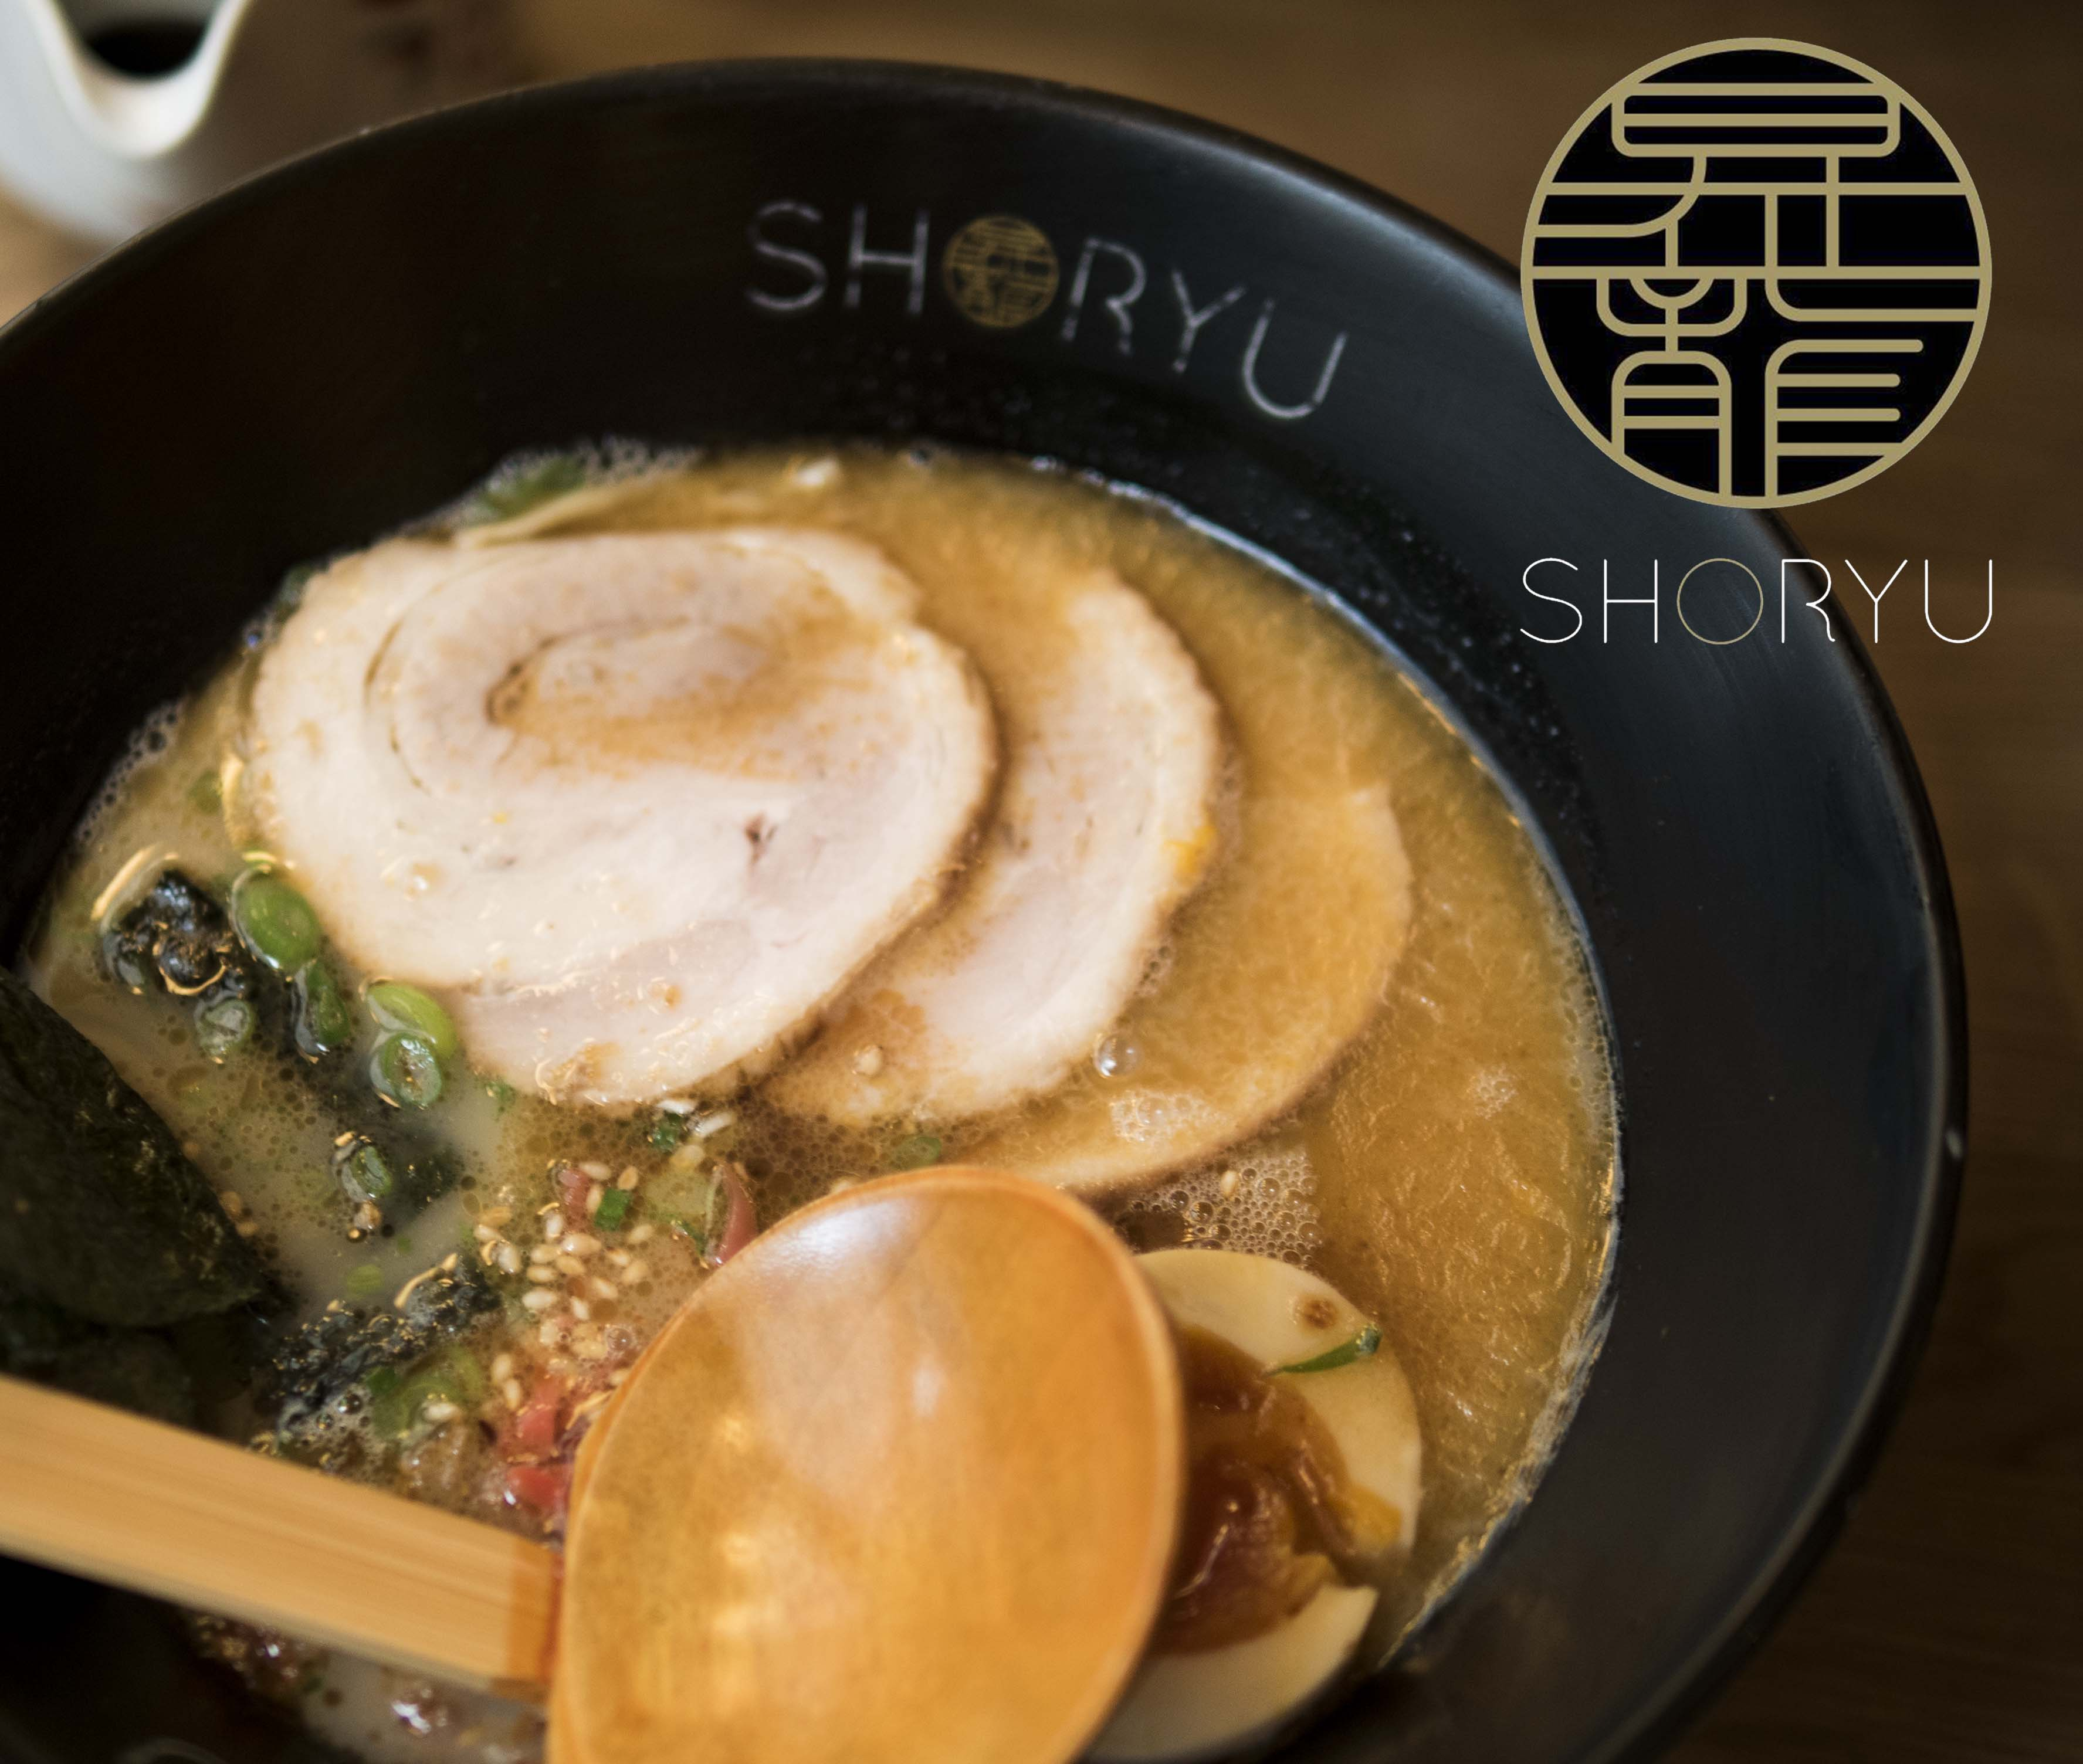 SHORYU Ramen Bar London Review post image